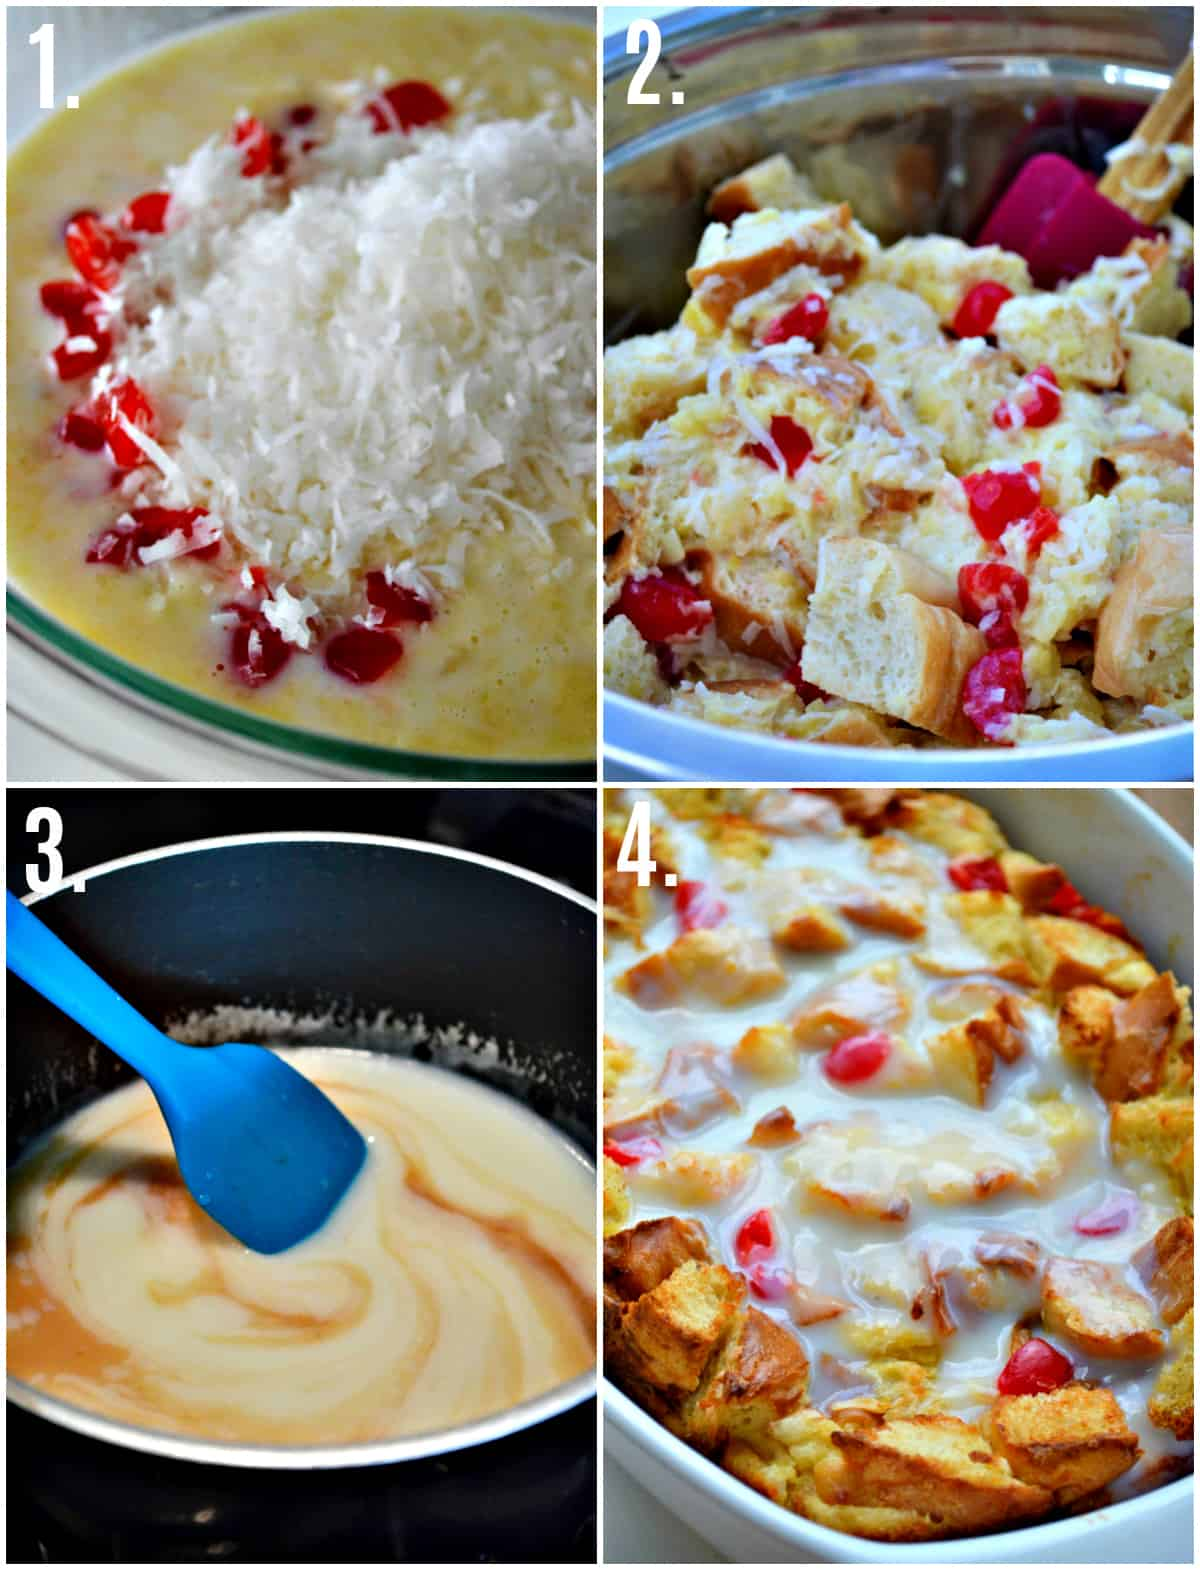 Step by step photos on how to make Pina Colada Bread Pudding